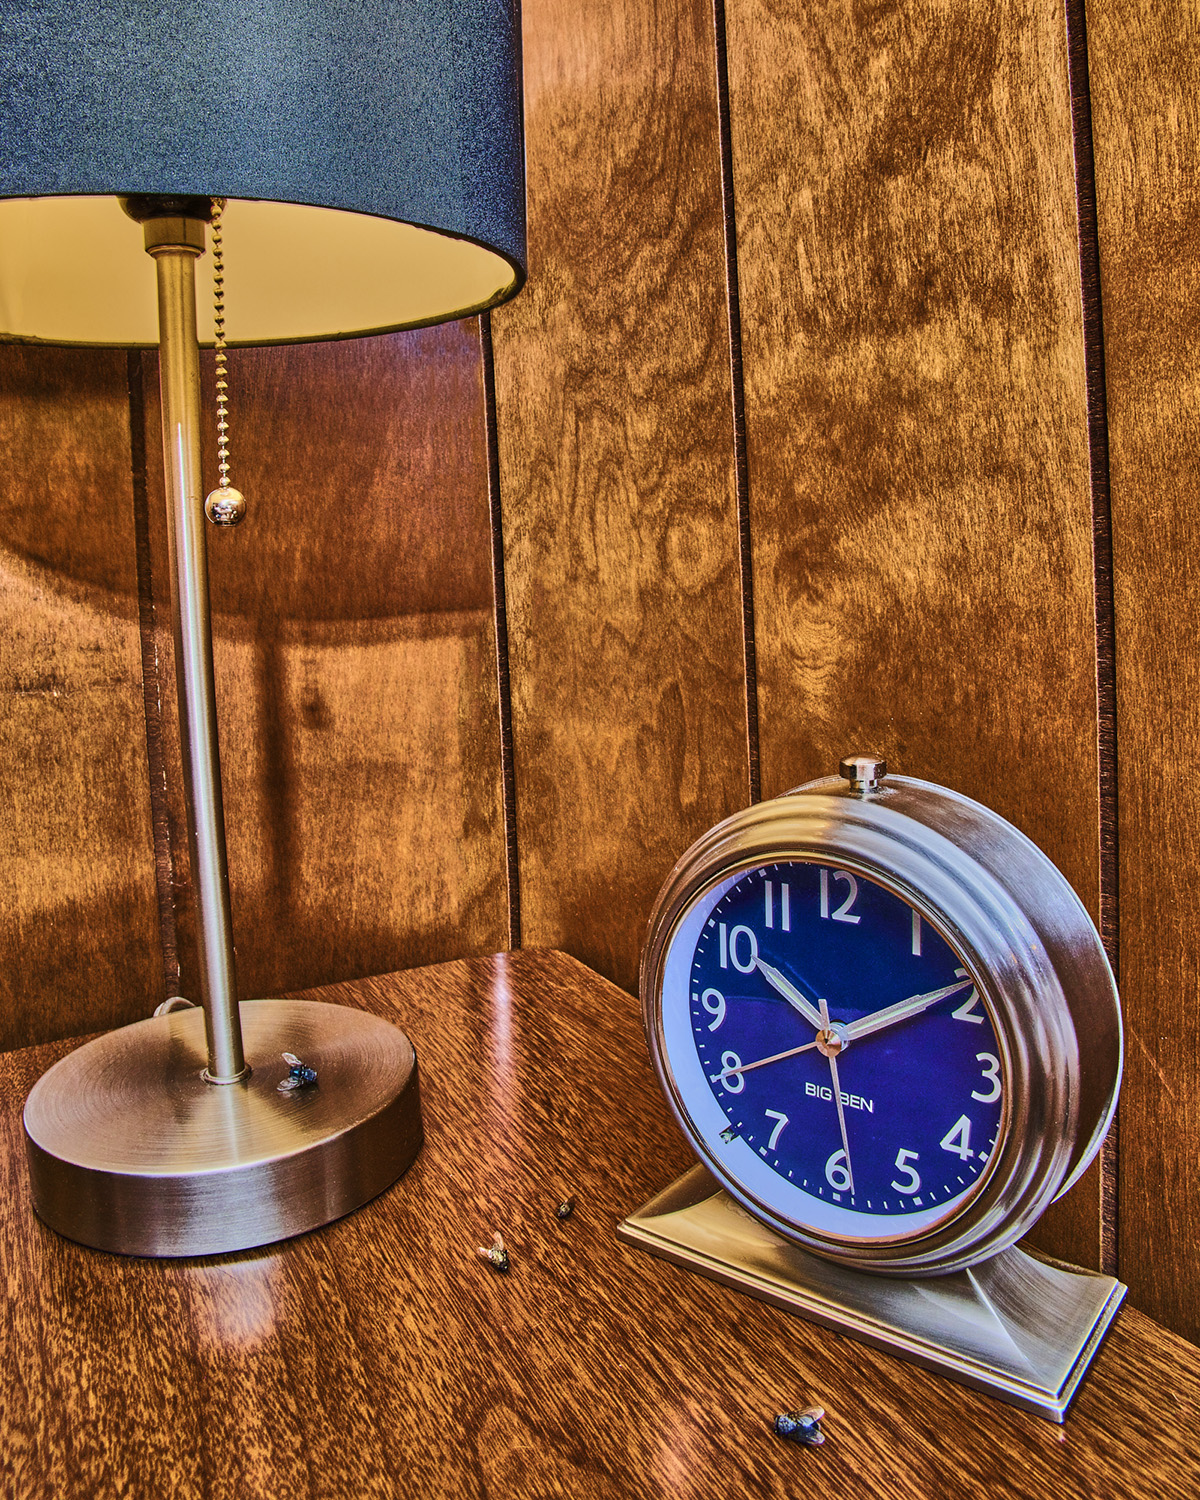 A table lamp and clock sit on a wooden surface.